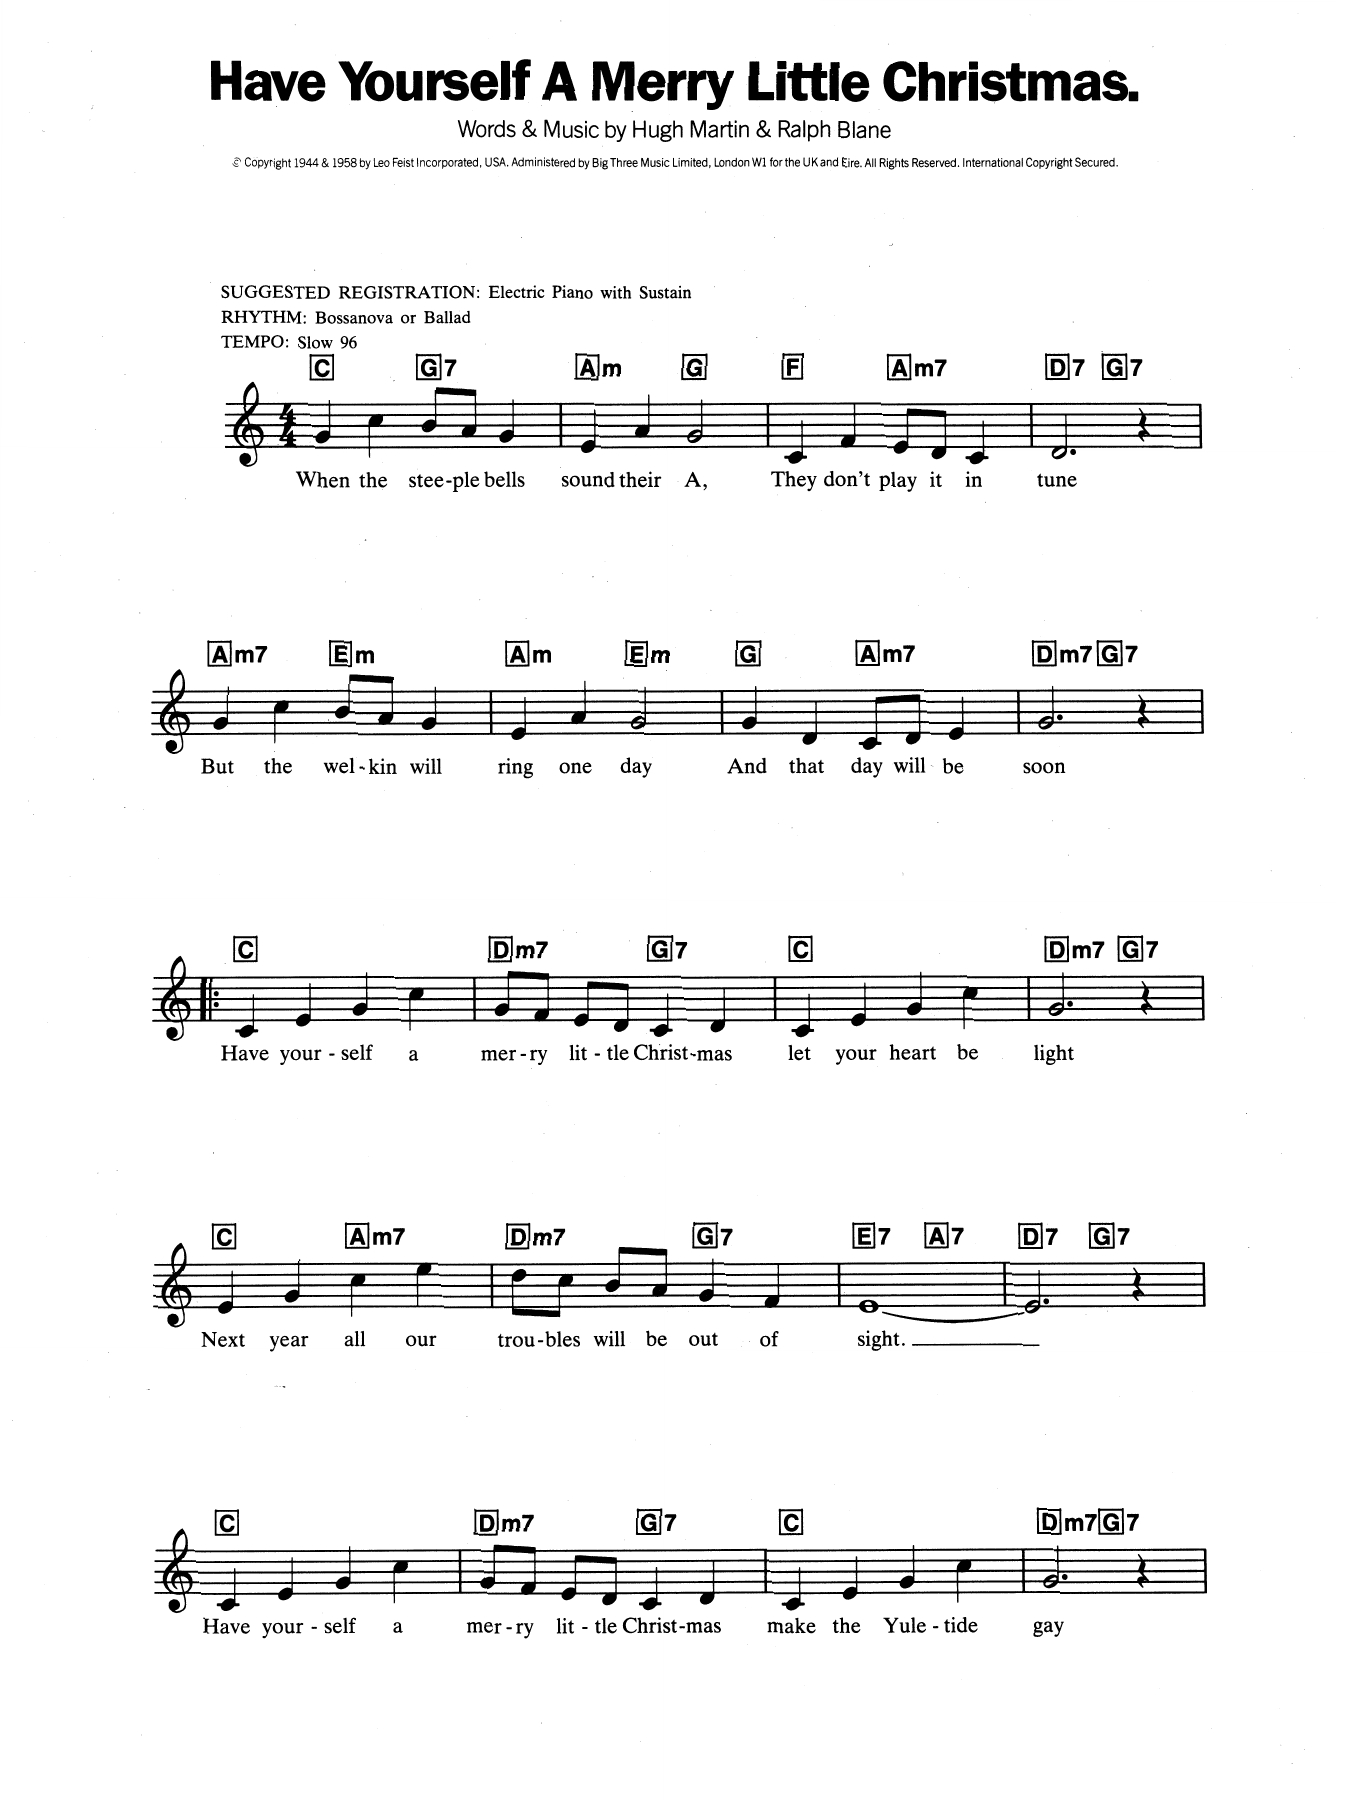 Have Yourself A Merry Little Christmas Chords Sheet Music Digital Files To Print Licensed Hugh Martin Digital